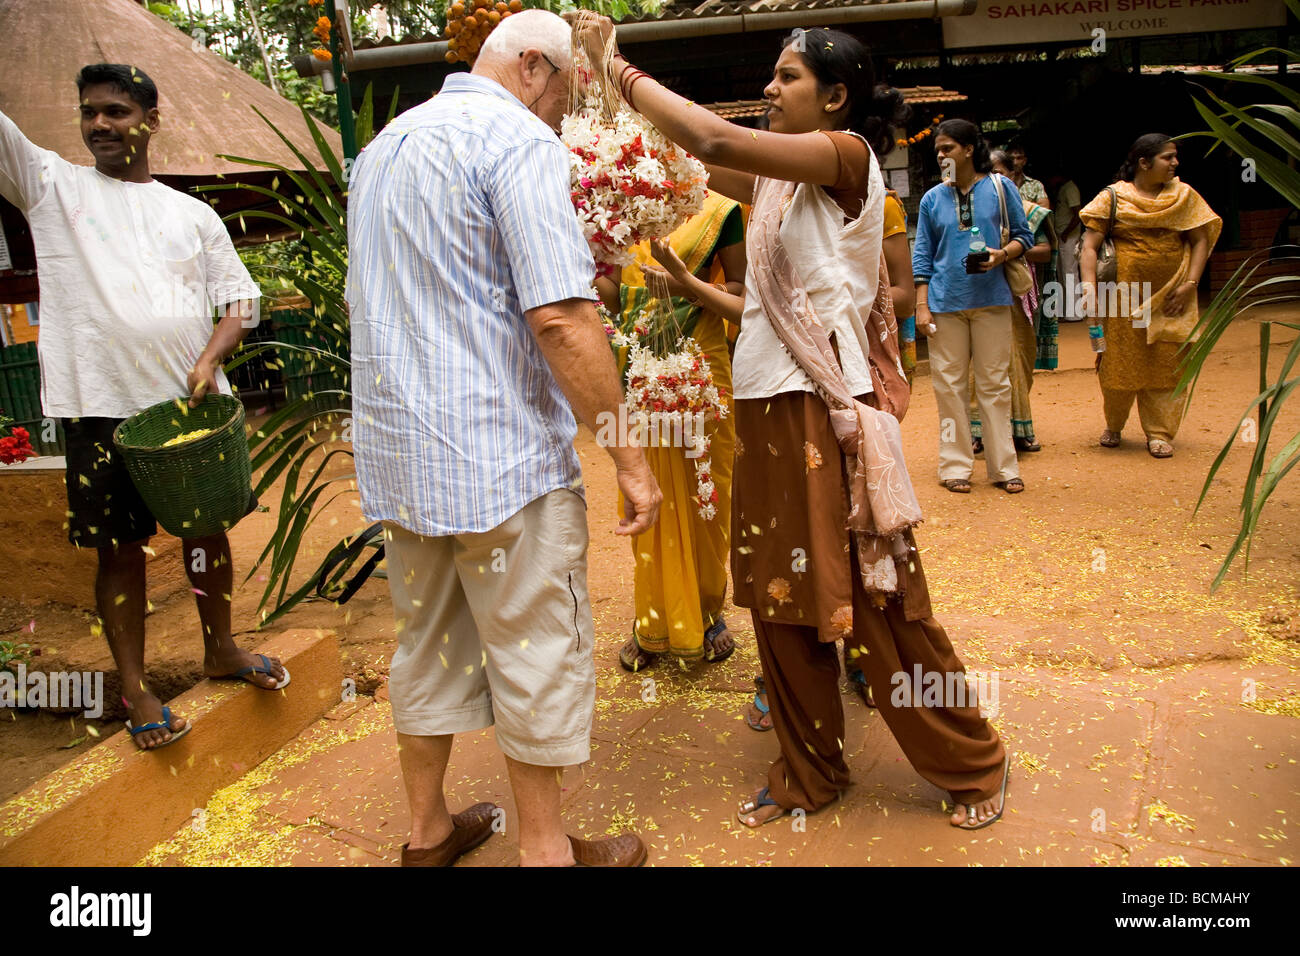 A western tourist is welcomed to Goa, India, with a garland of flowers. Petals are thrown over the arriving tourists. - Stock Image